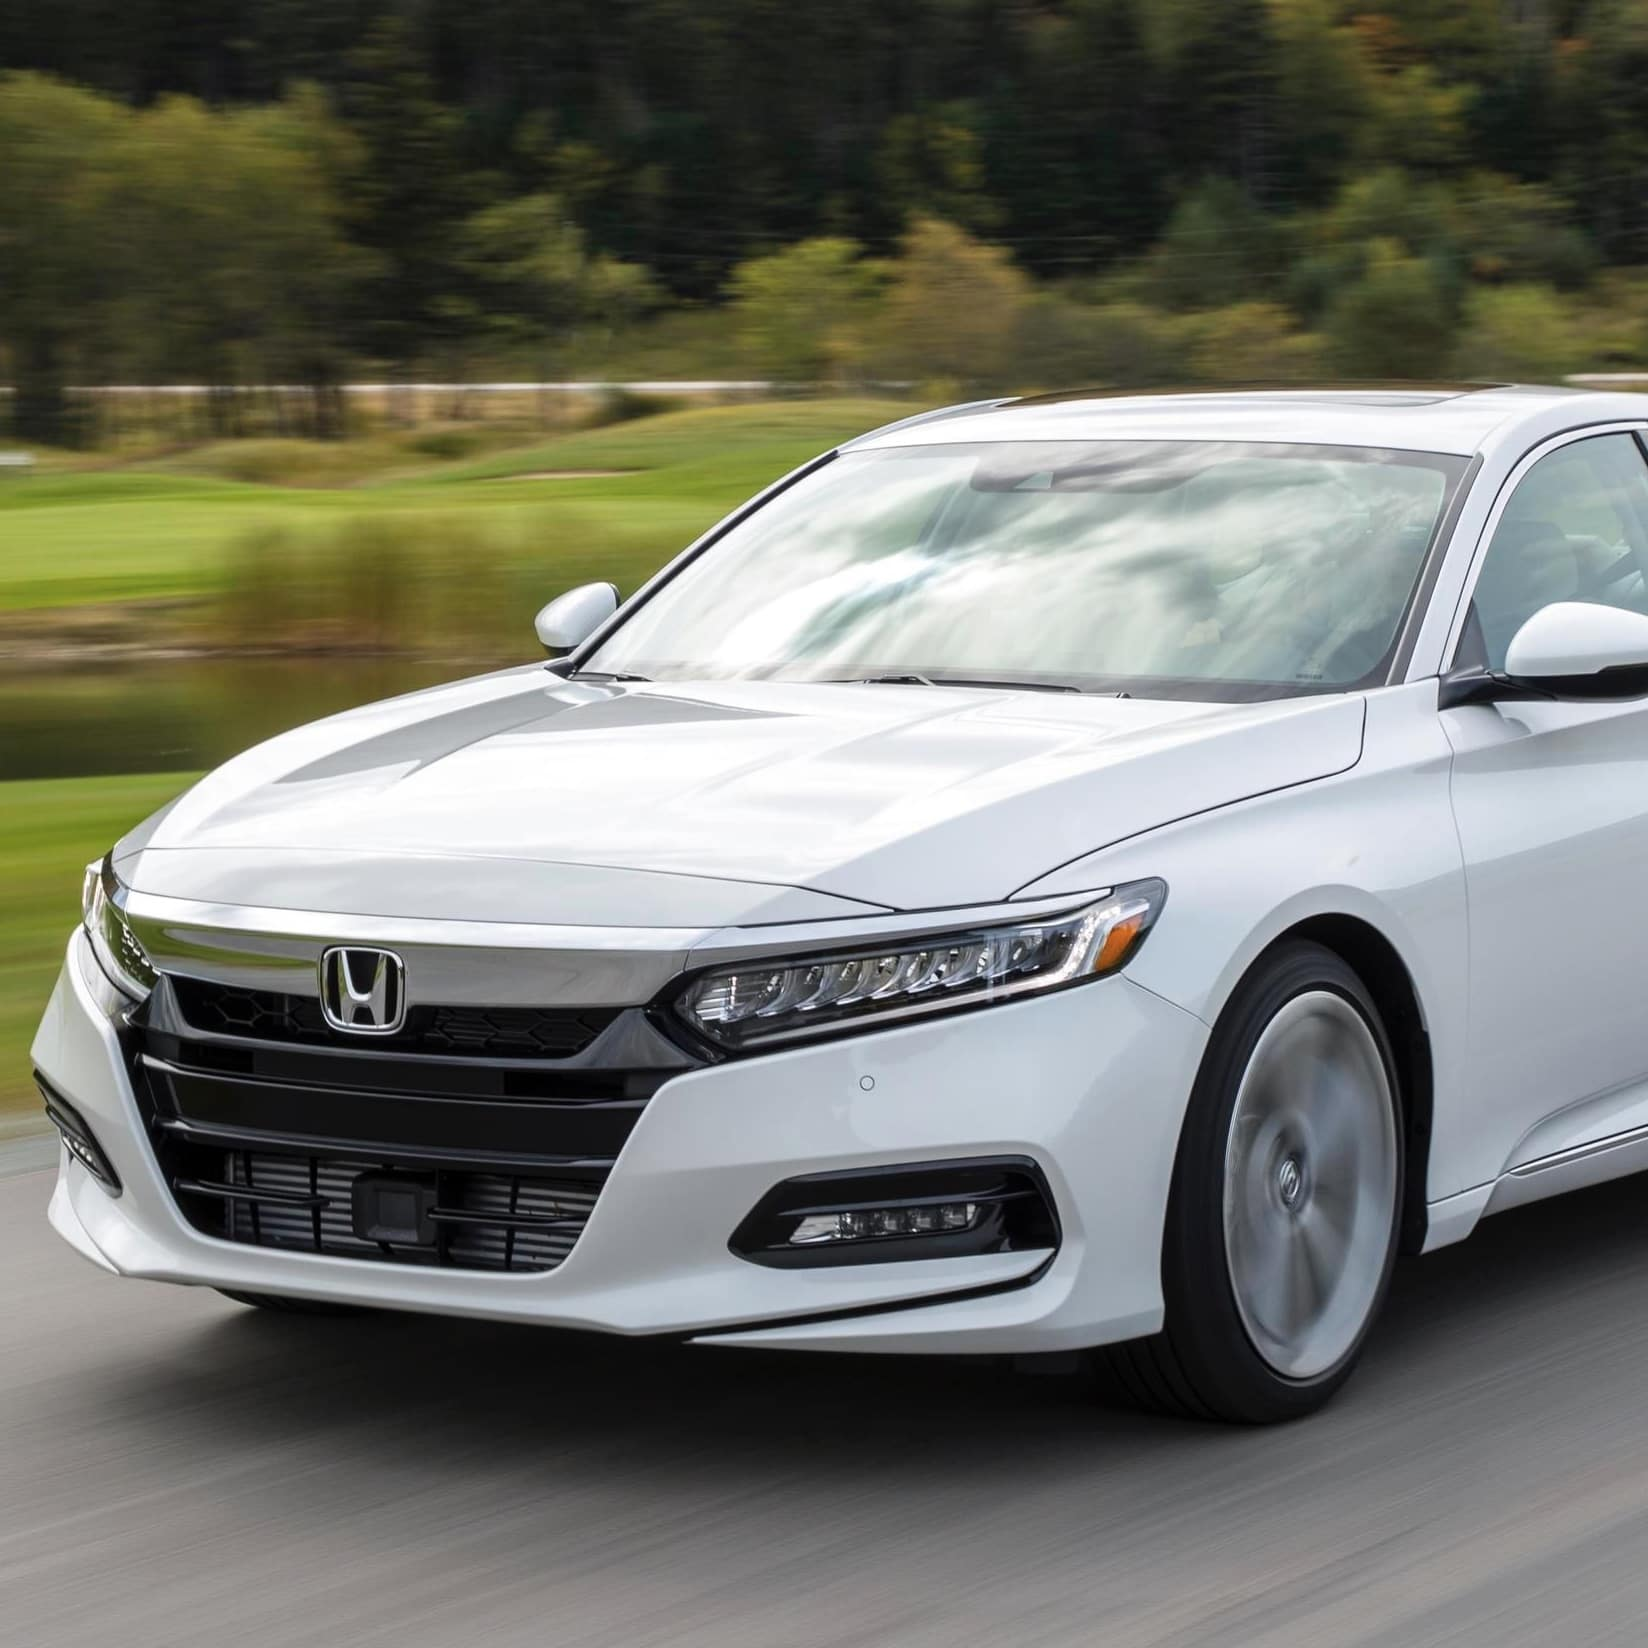 2018 Honda Accord Sedan Information